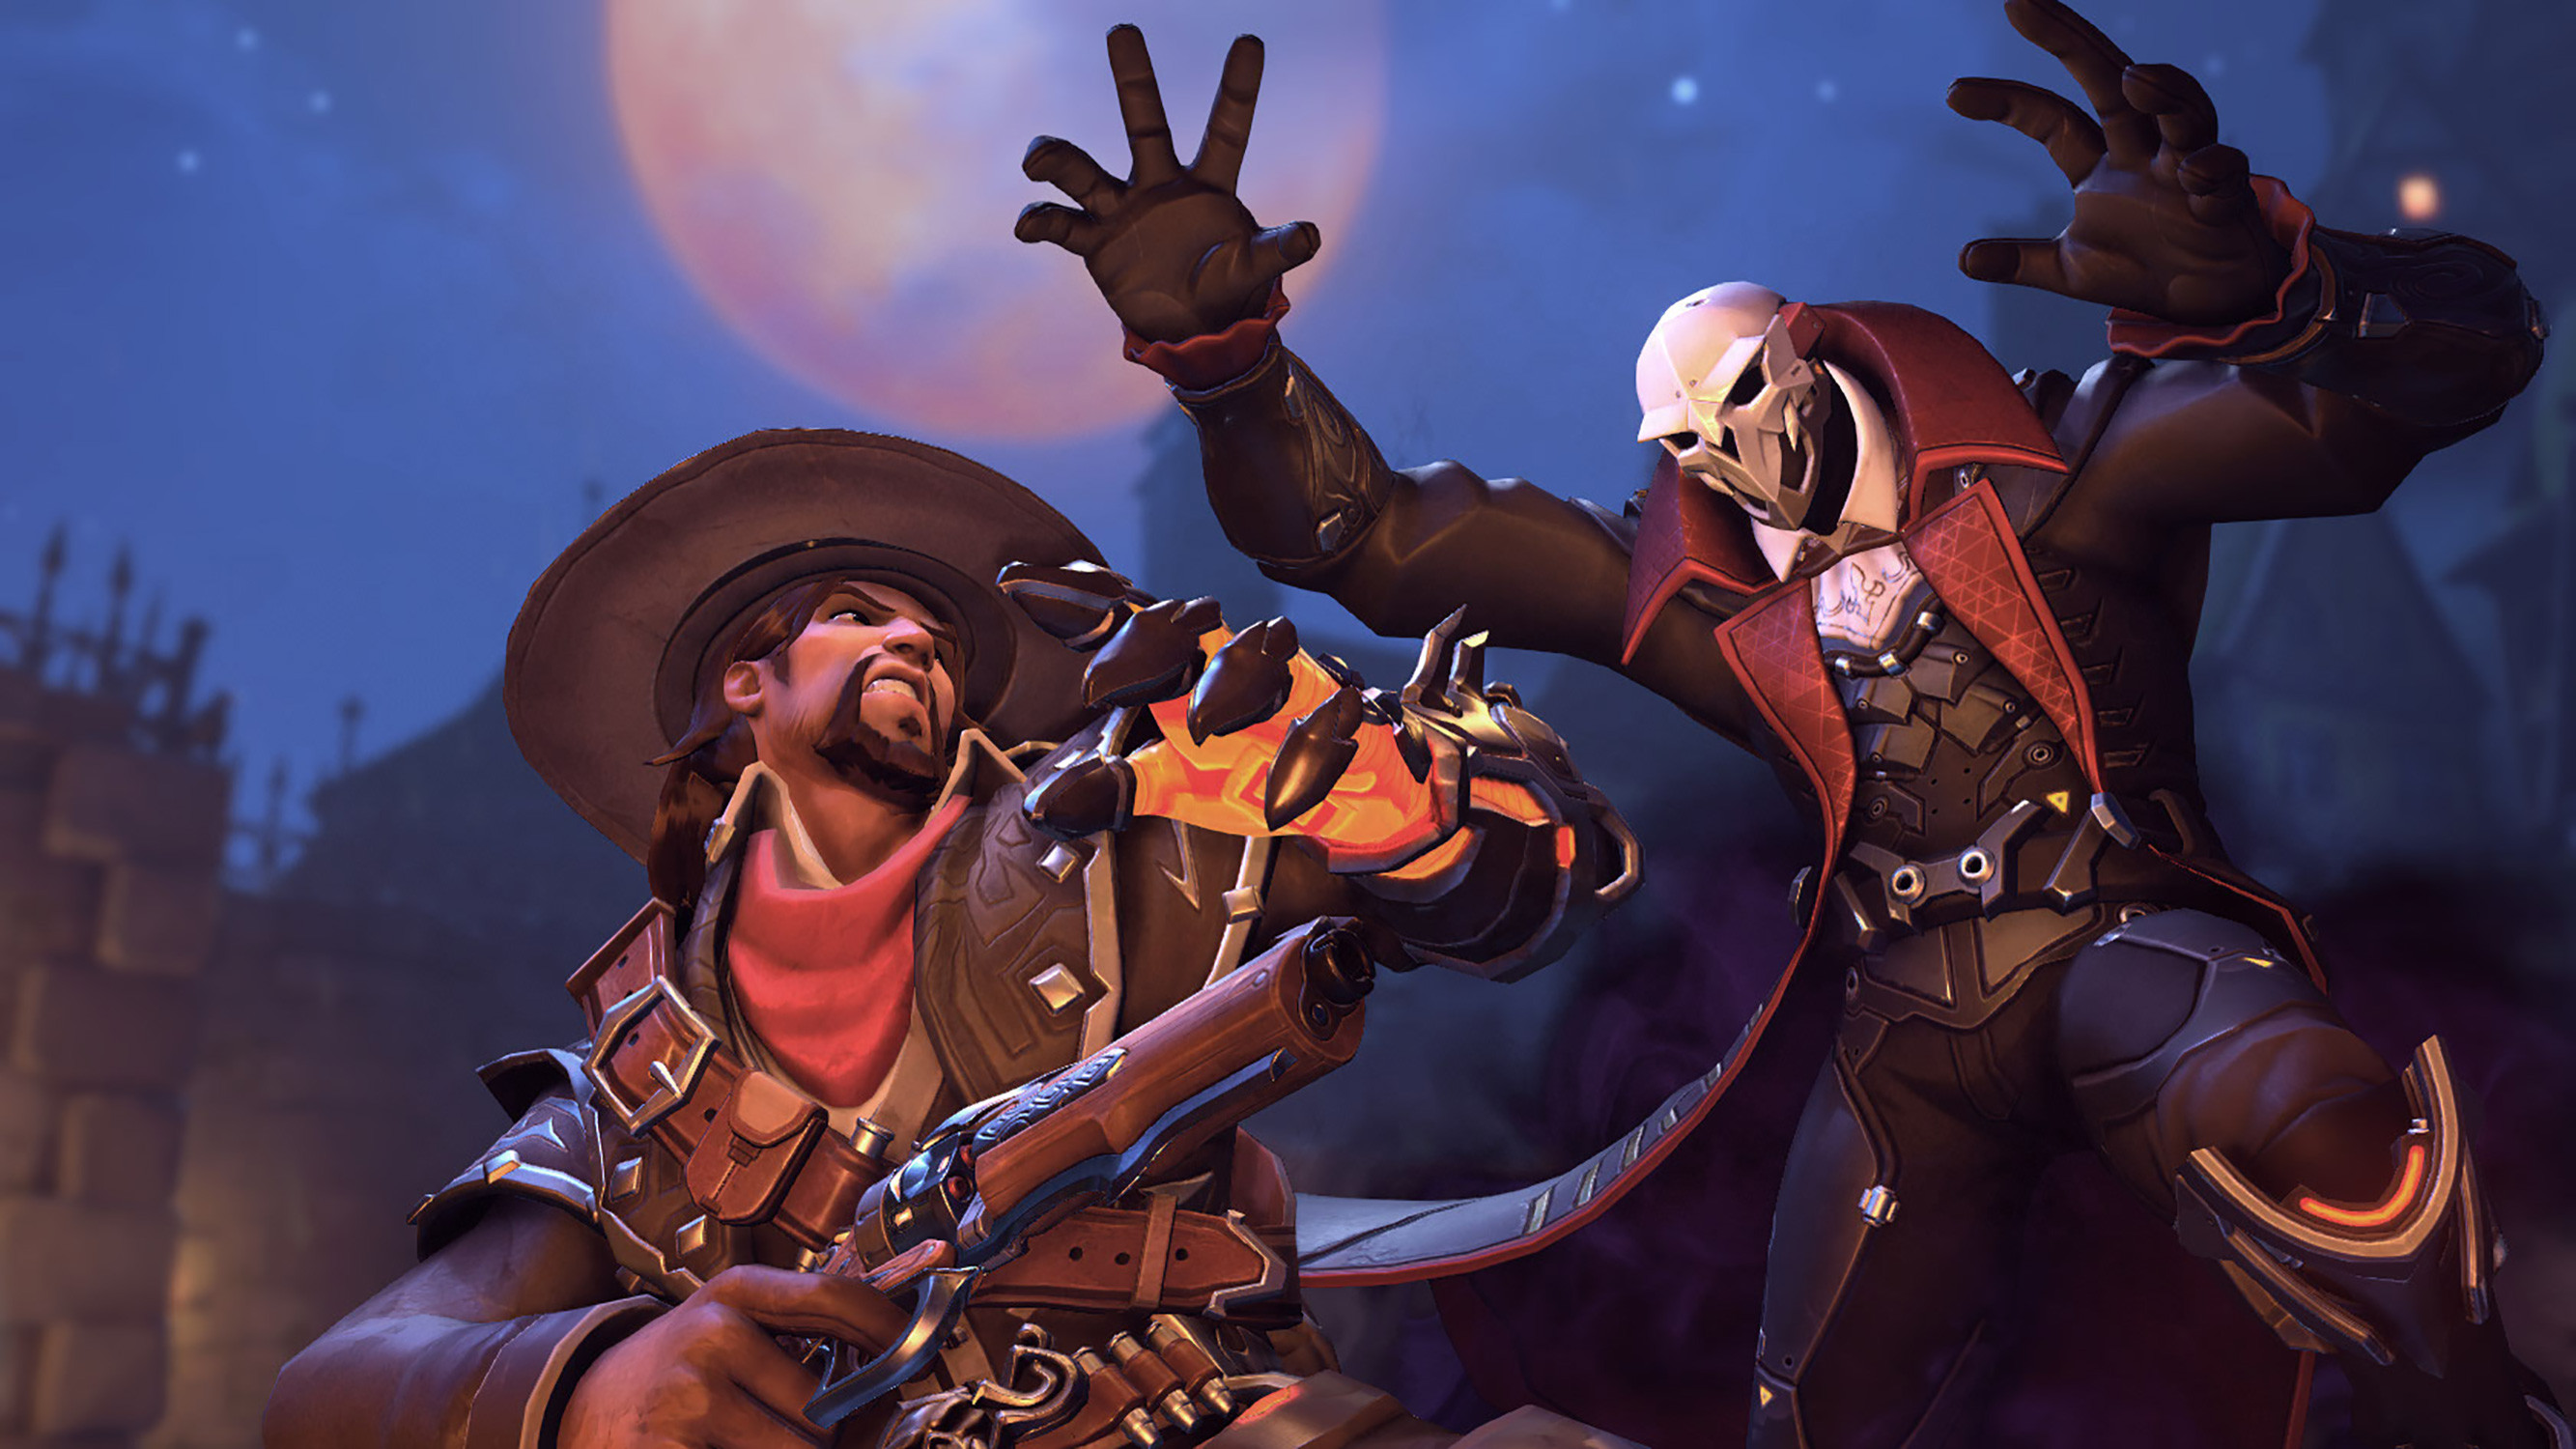 With McCree, it's a trick and treat all in one! Dracula Reaper by Rabcat.